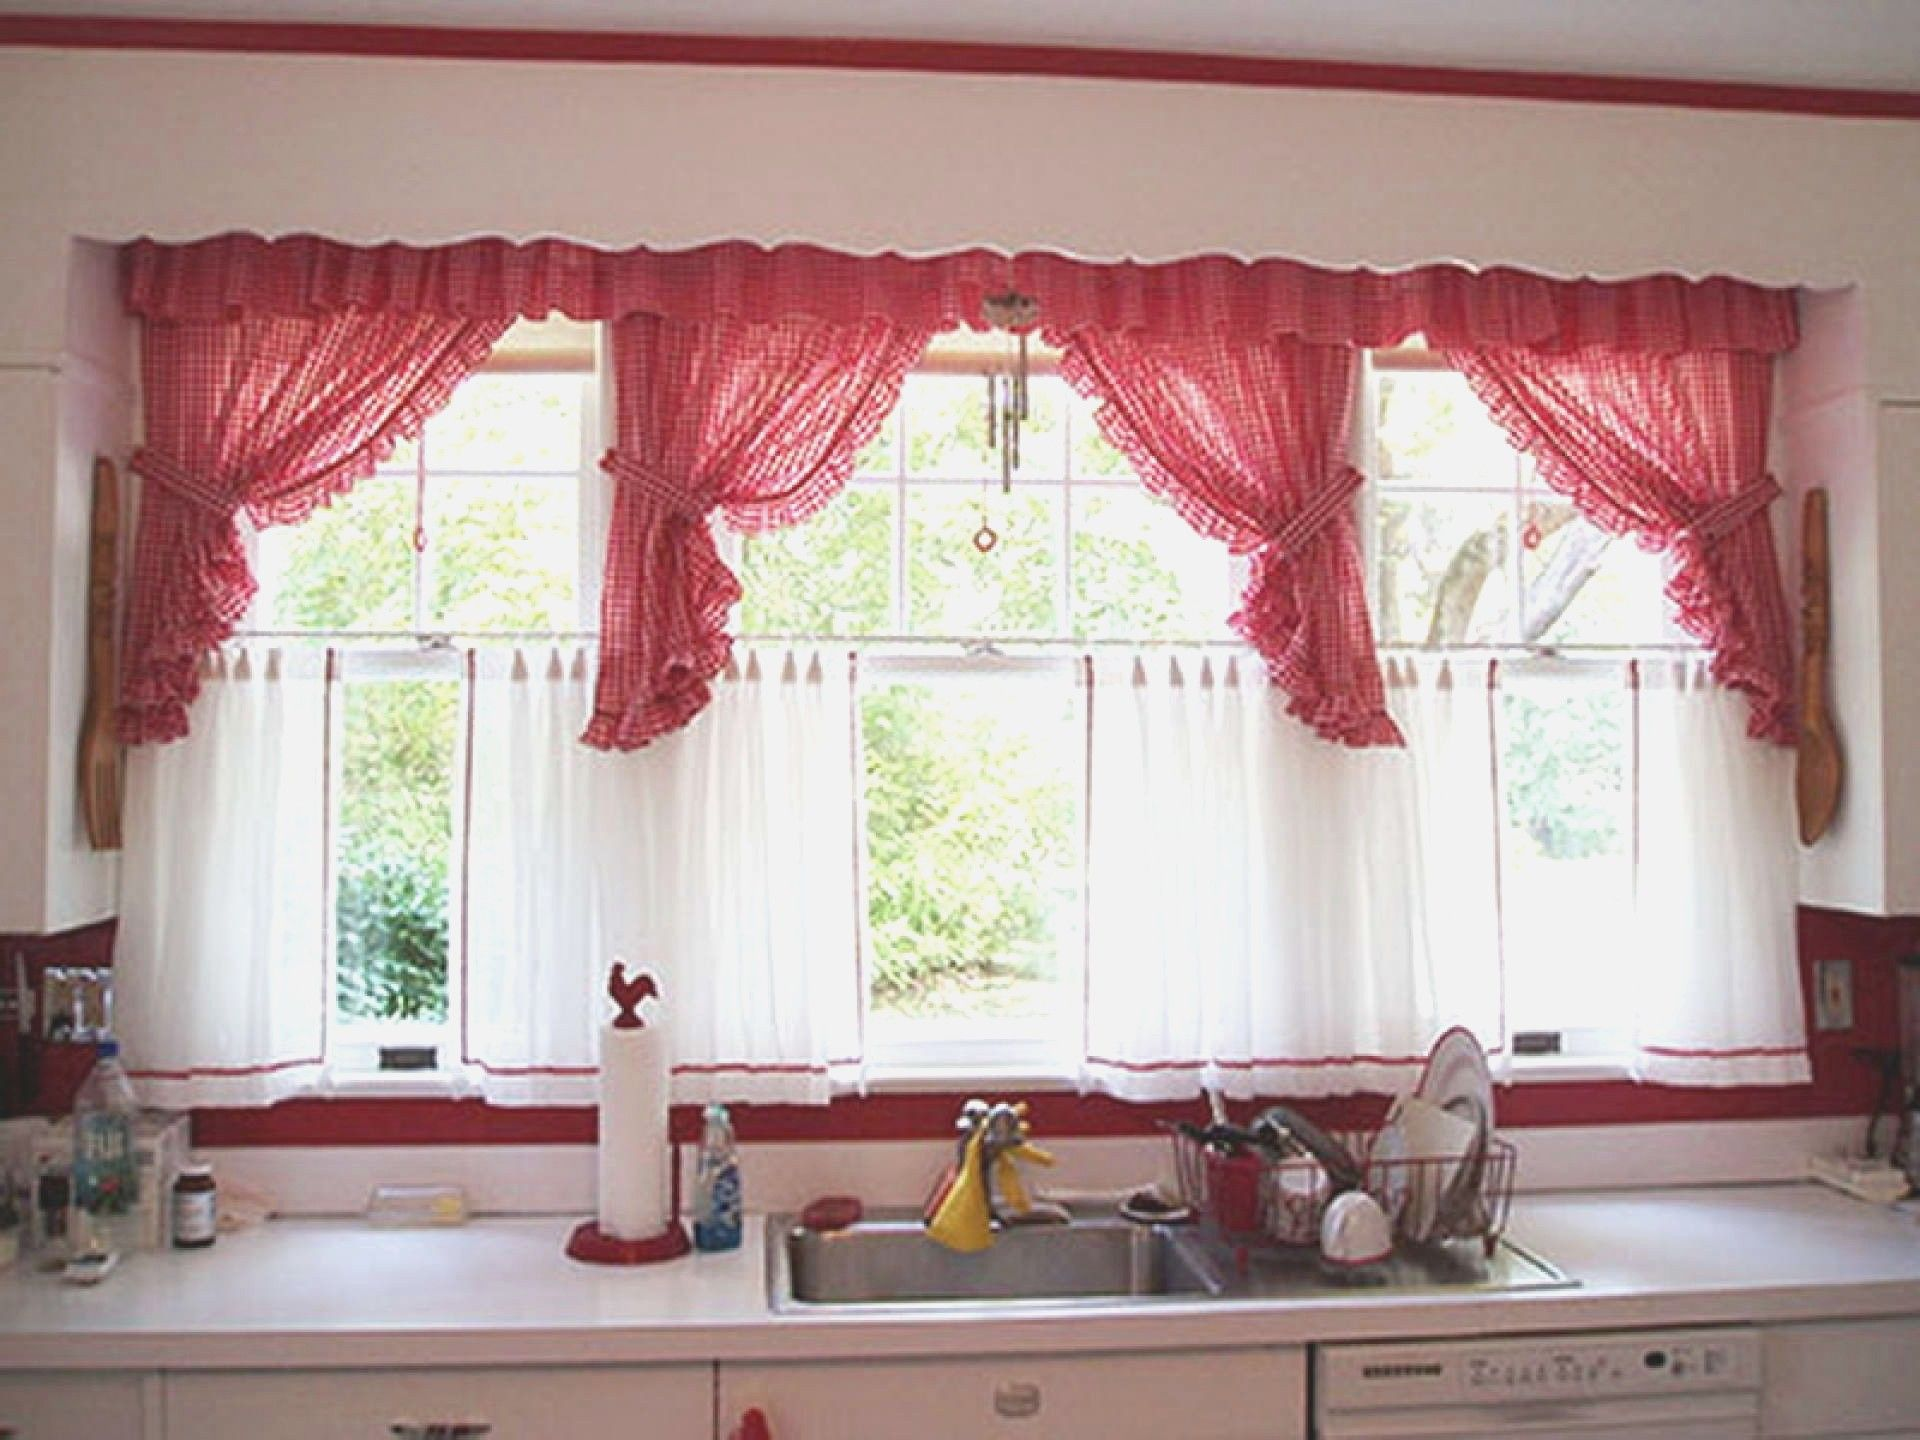 Red Valances For Kitchen Windows   Red Valances For Kitchen Windows, Striped  Valances For Kitchen